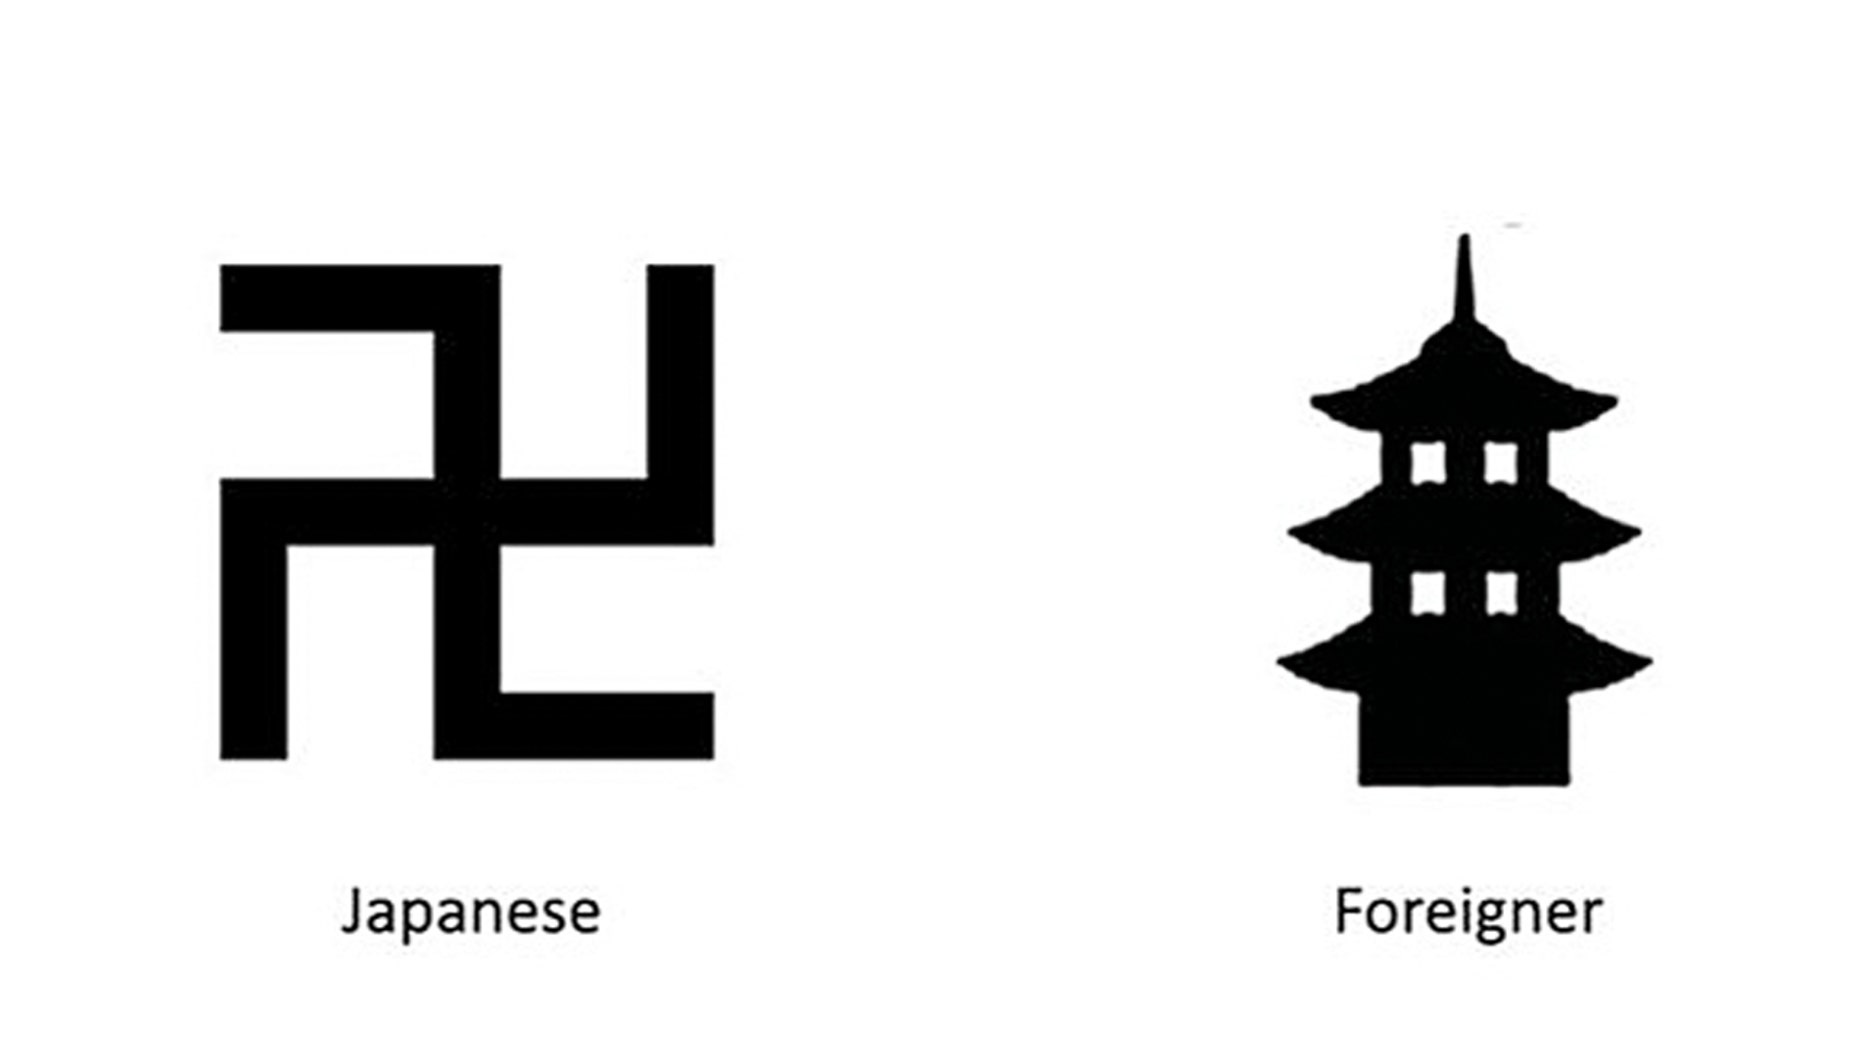 Japan is getting rid of a swastika-like symbol for a temple, replacing it with a pagoda sign.